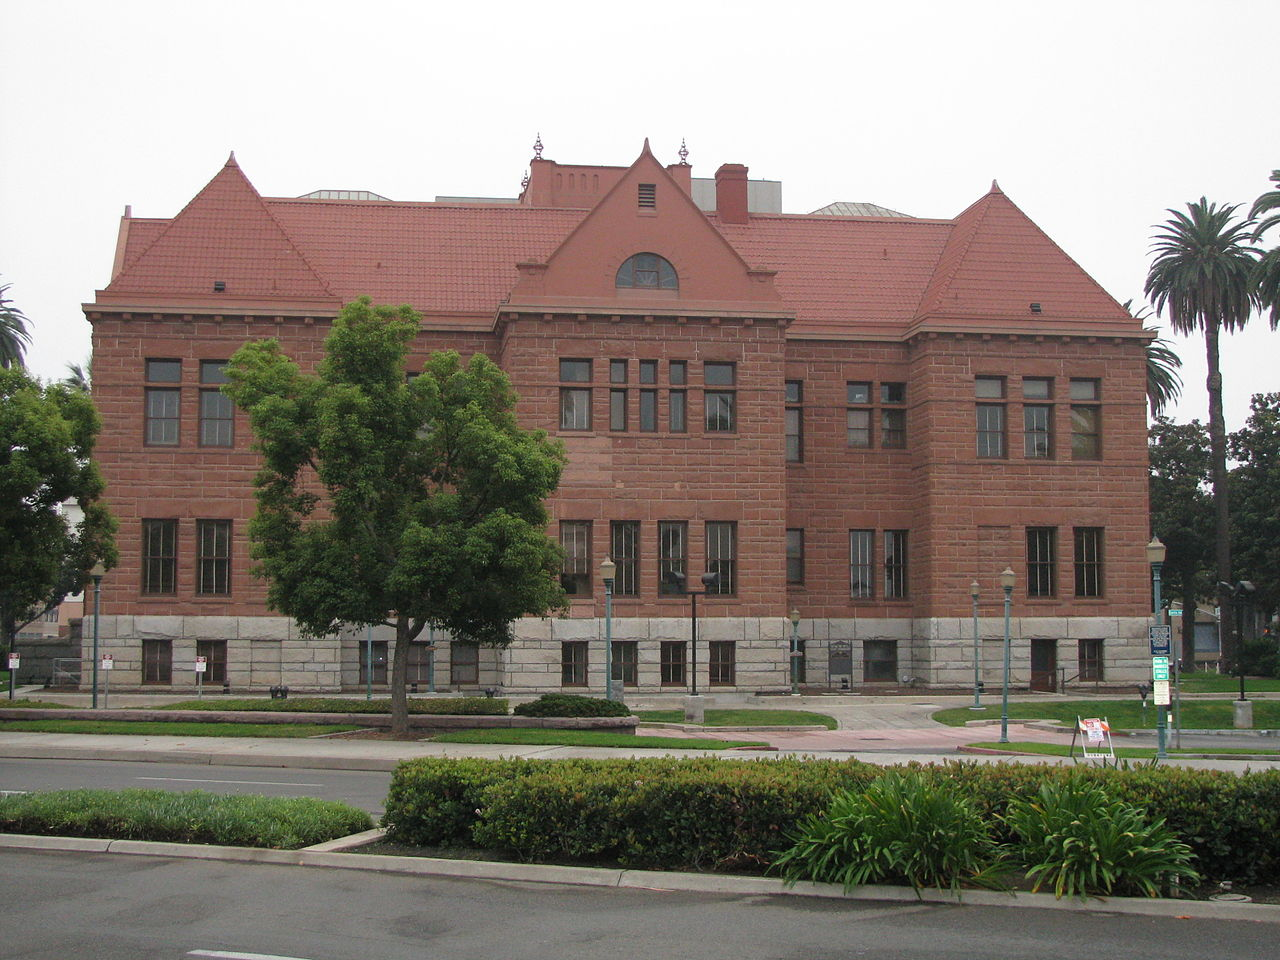 Best Place To Visit In Downtown Santa Ana-Old Orange County Courthouse